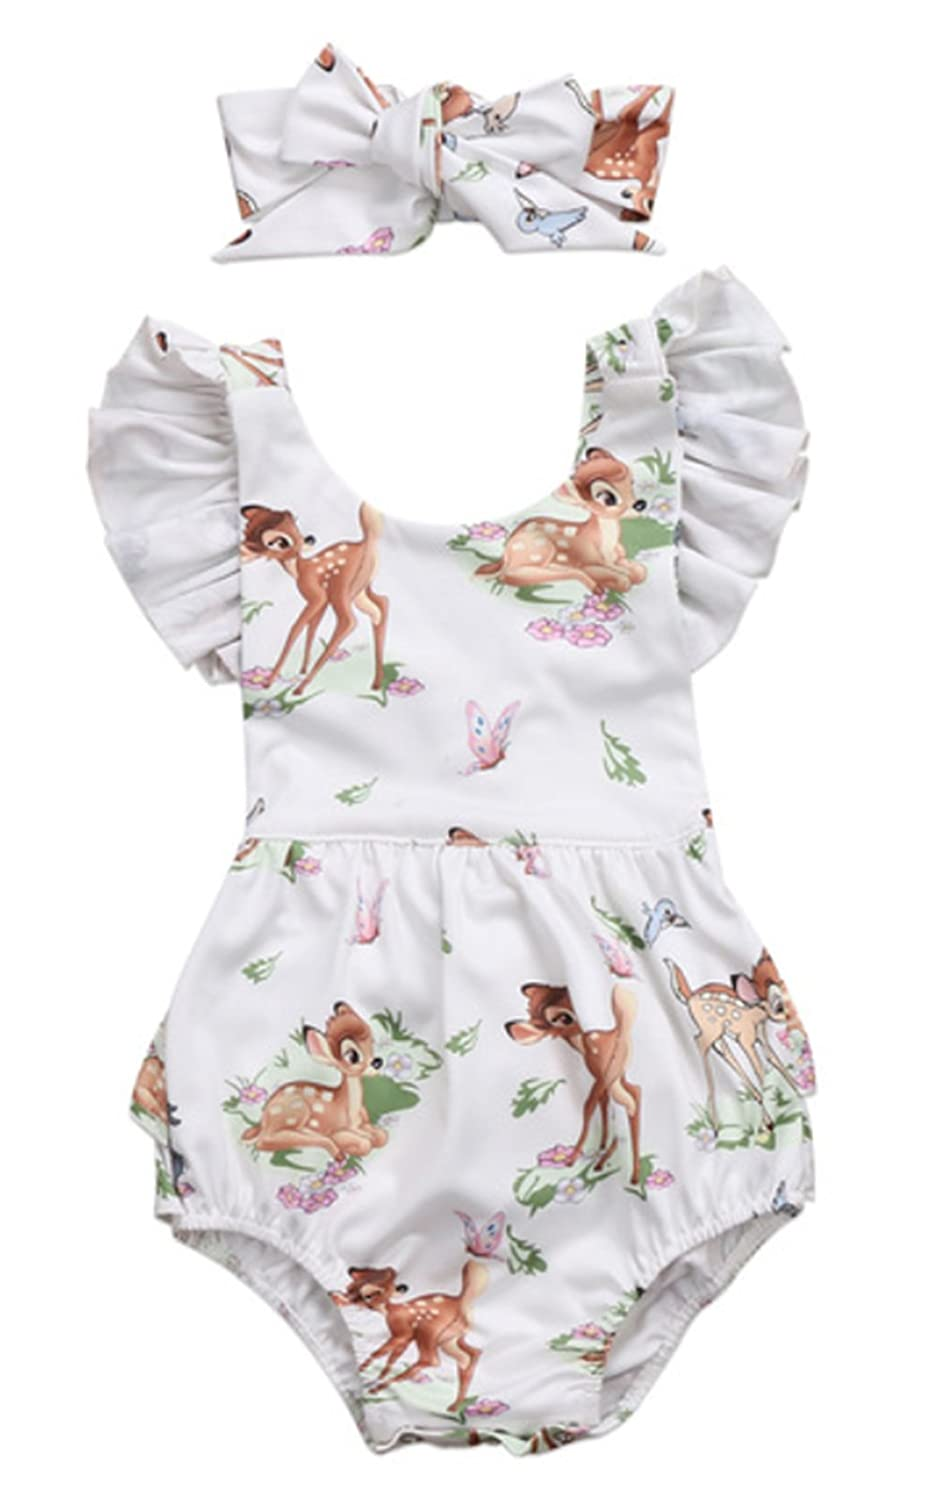 ba111ec2d super cute Christmas deer character ruffled sleeve backless sunsuit romper  with self-tied headband comfortable material and fashionable with unique  design ...